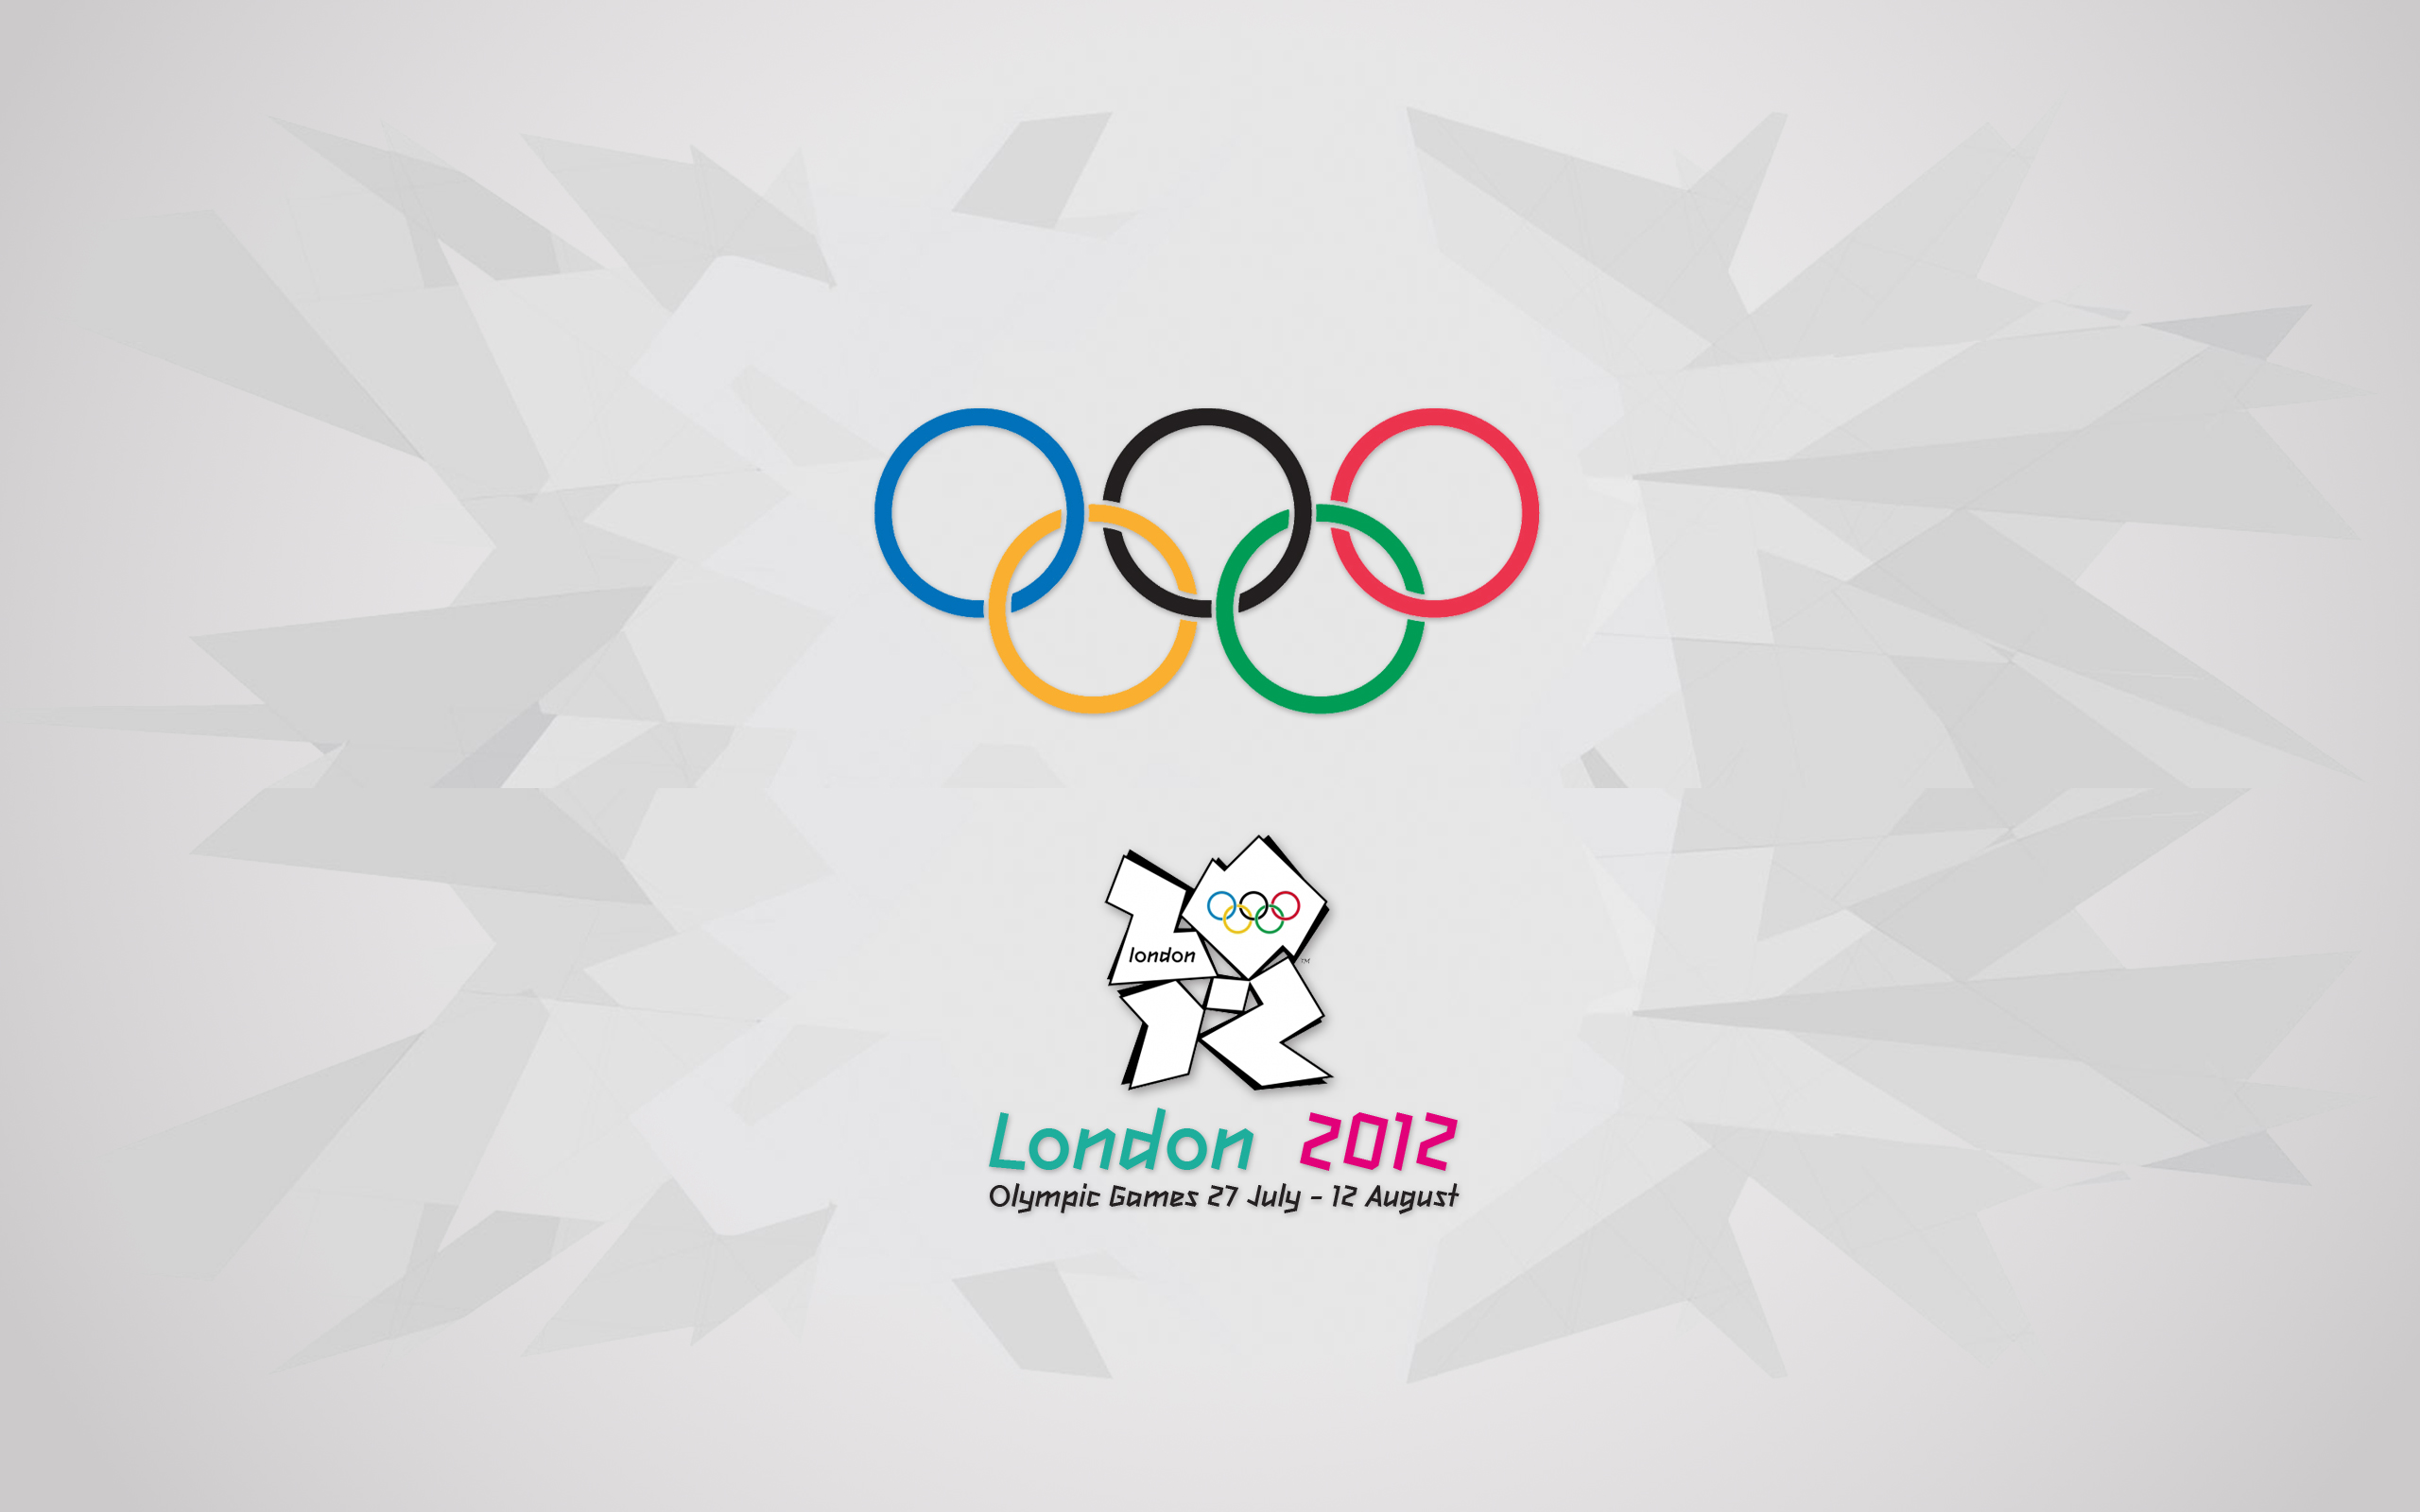 London Olympics Wallpapers and Background Images   stmednet 2560x1600